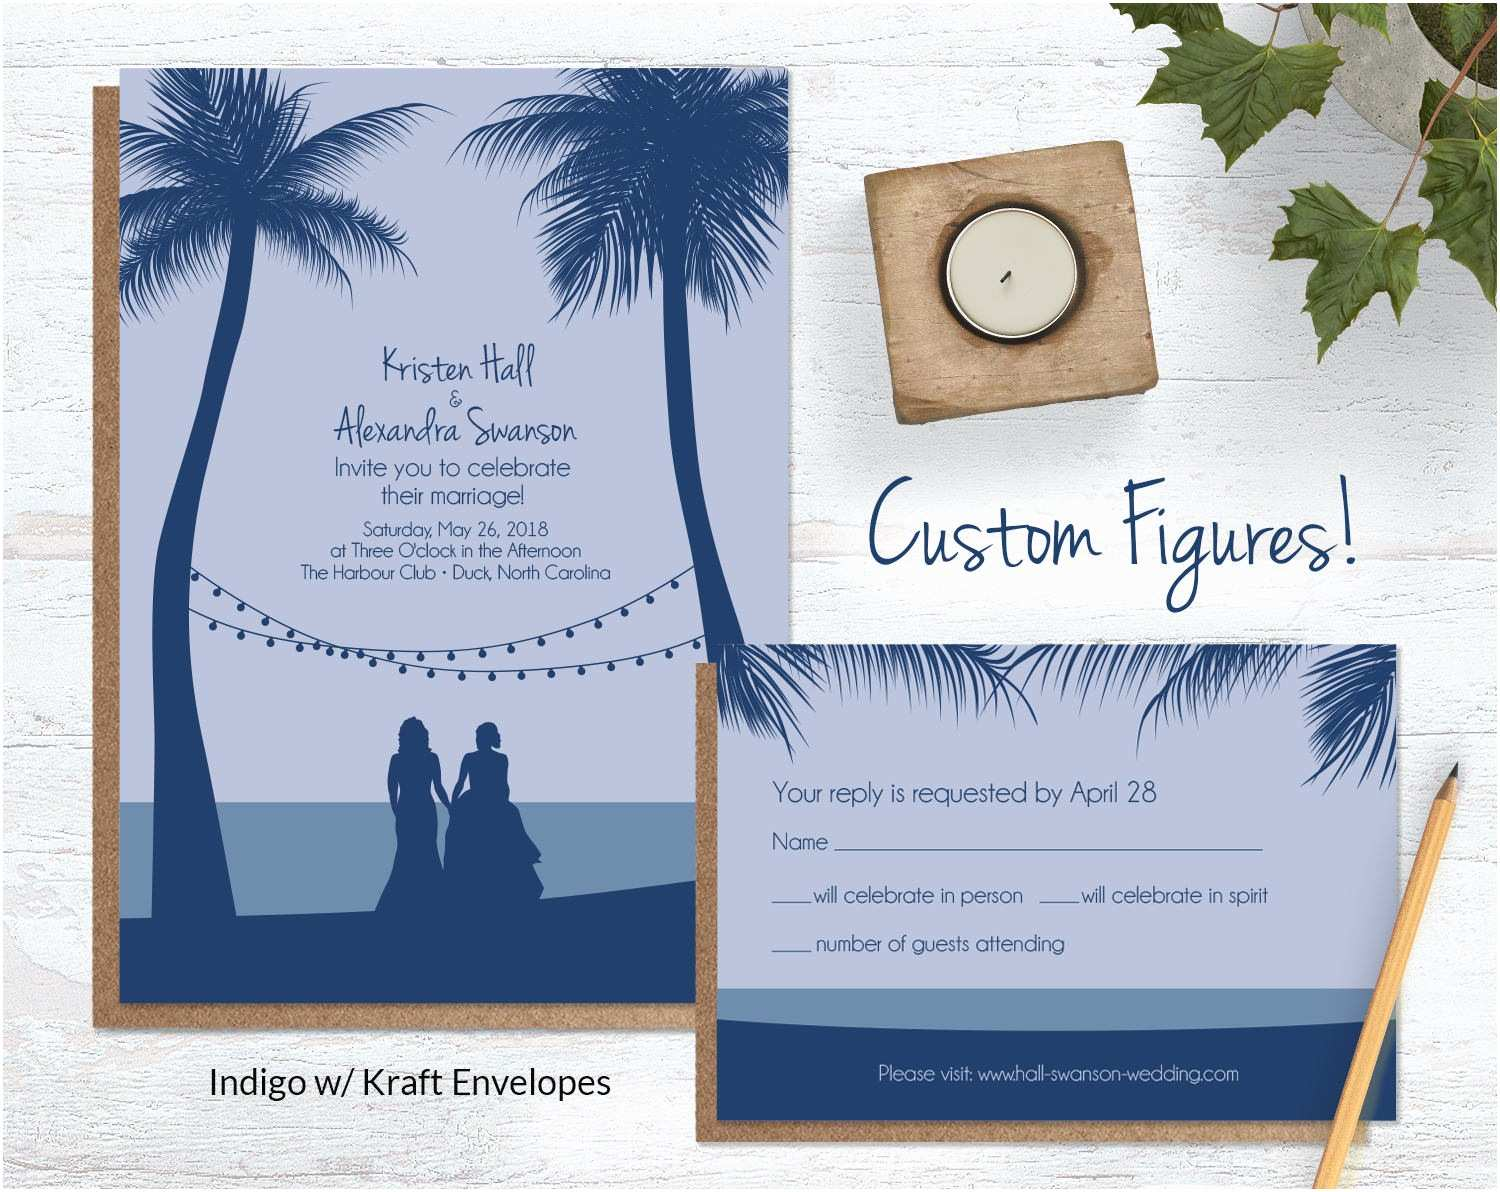 Wedding Invitations With Pictures Of Couple Beach Wedding Invitations With Custom Silhouettes